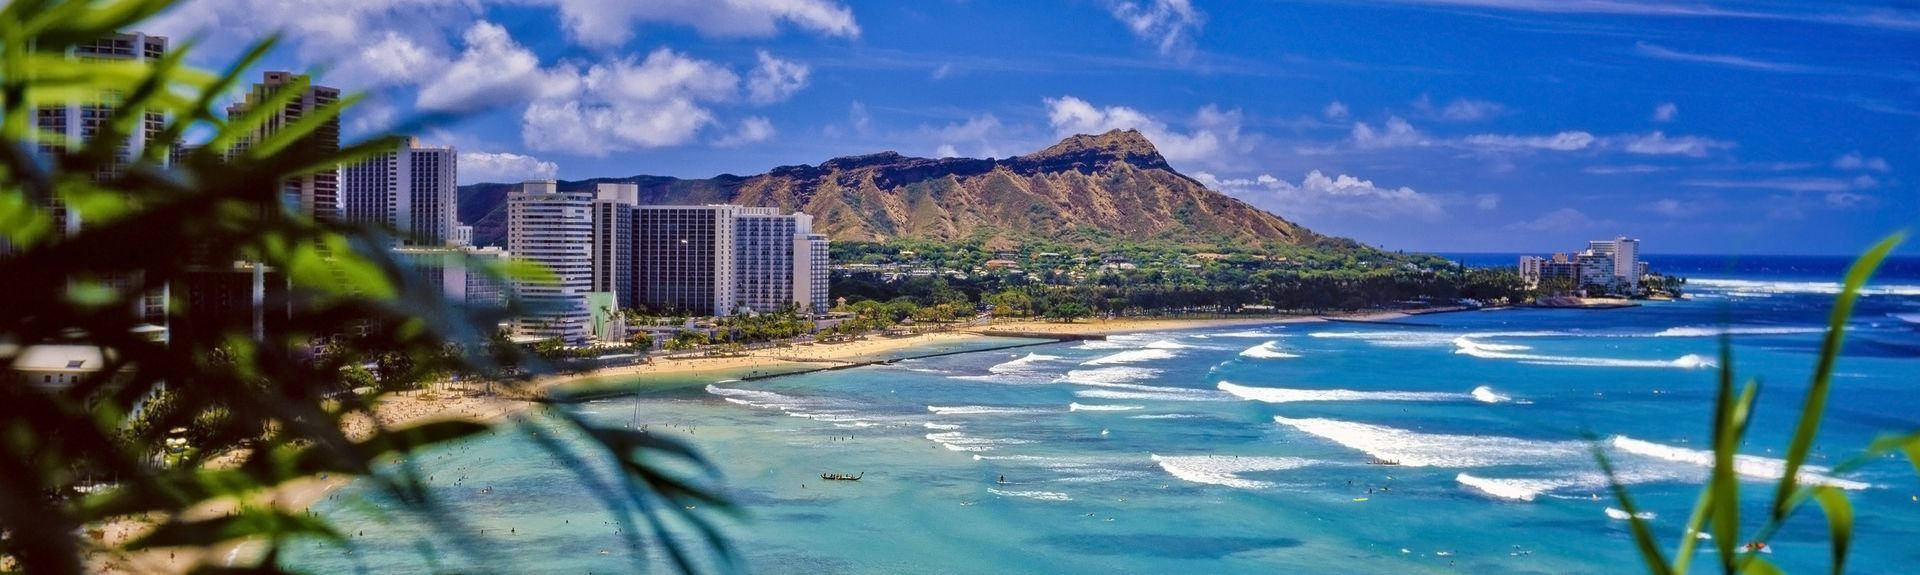 Waikiki, Honolulu, Hawaii, United States of America